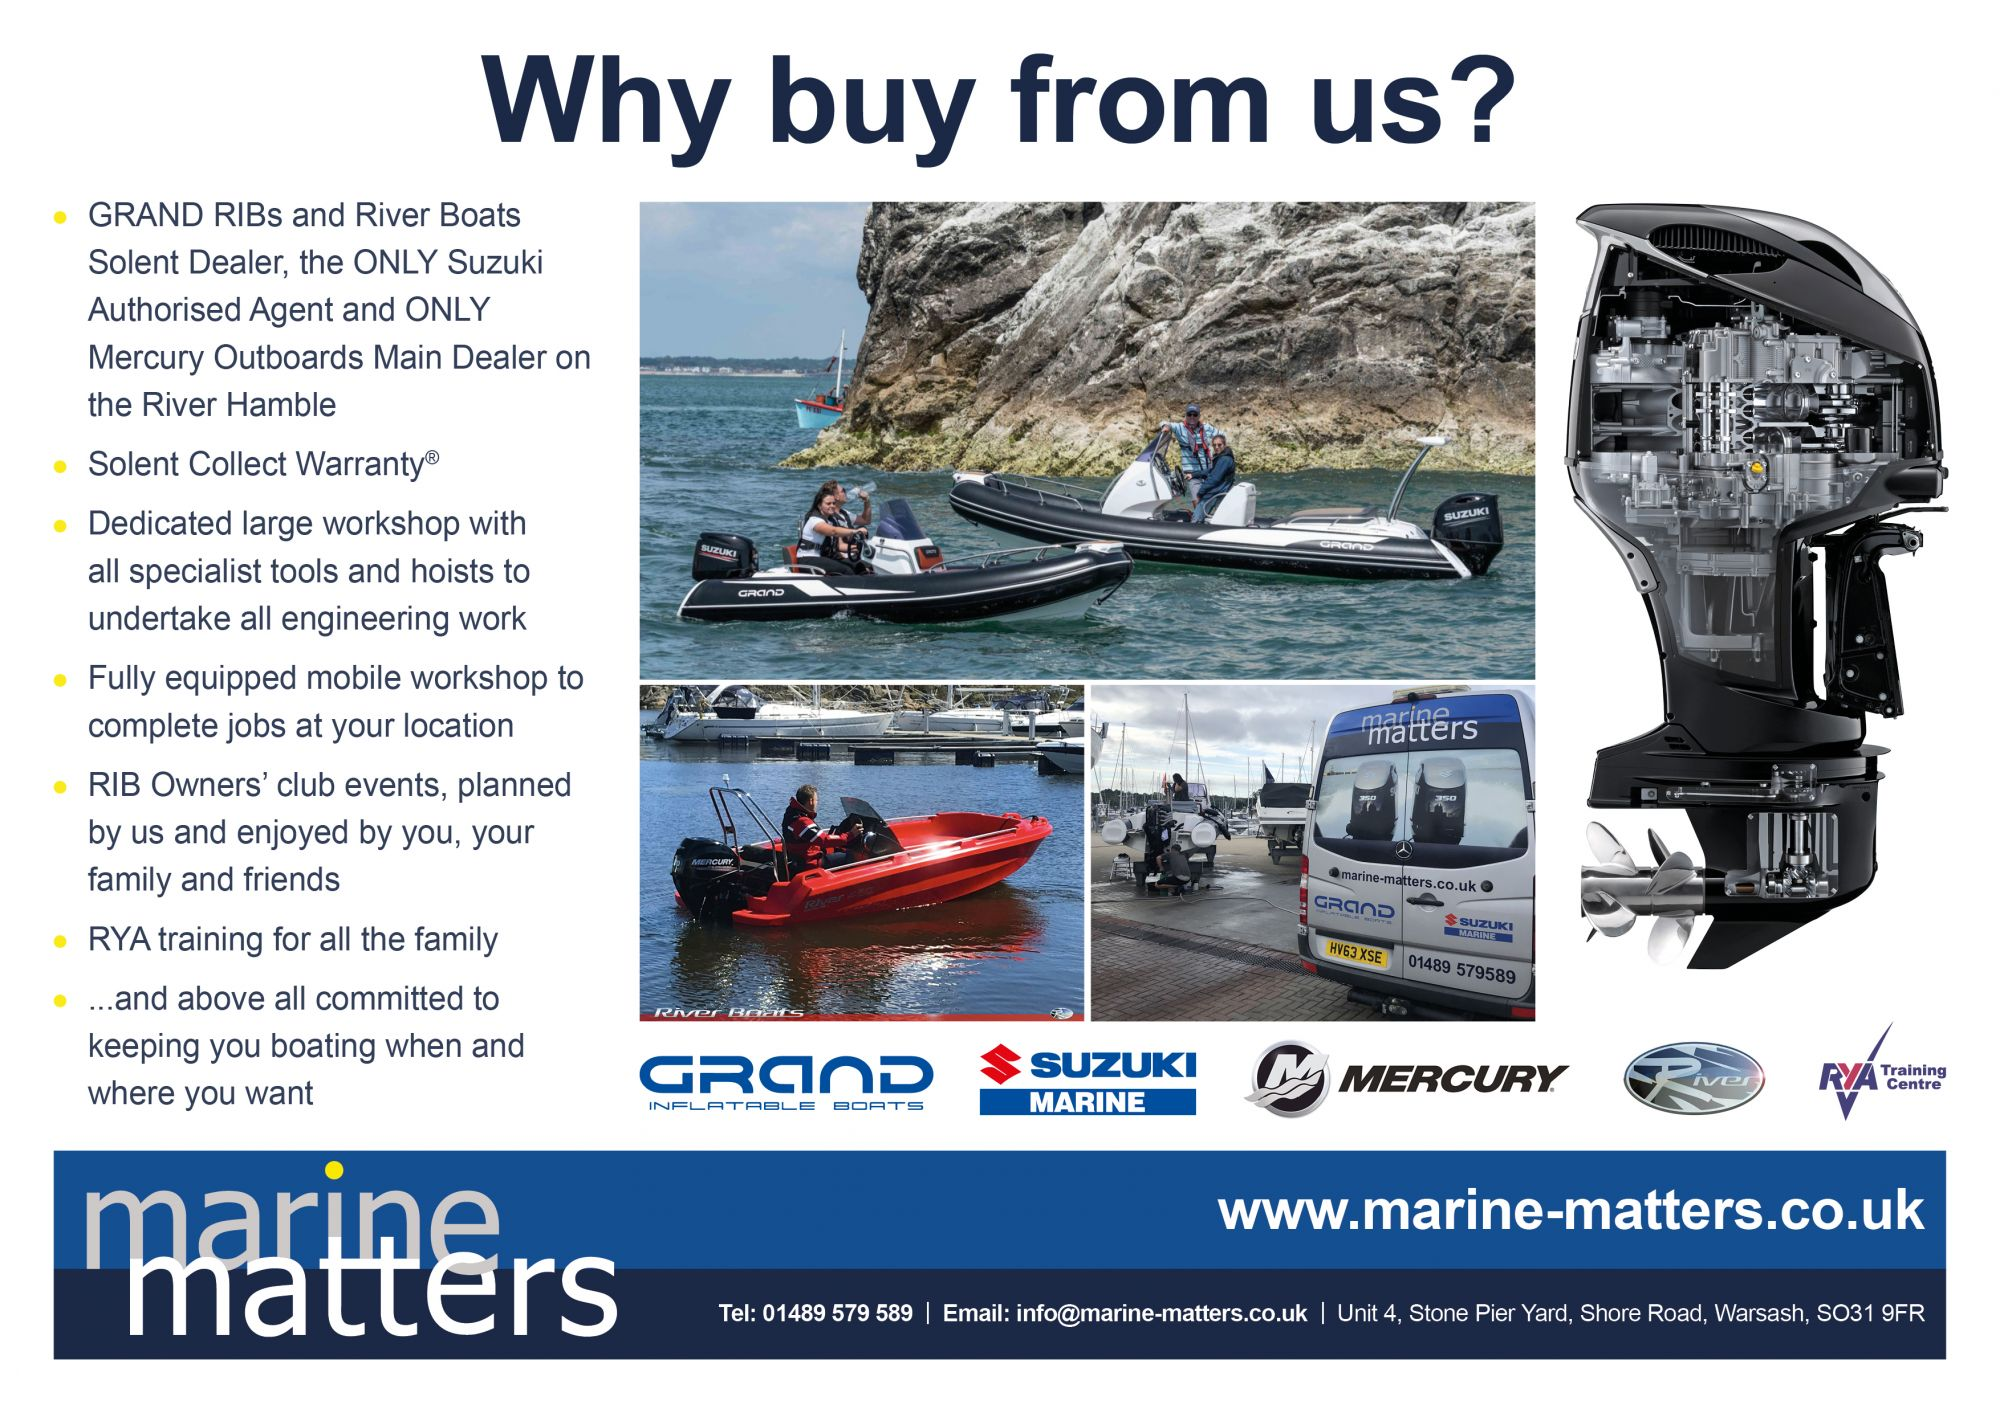 Why Buy From Marine Matters?